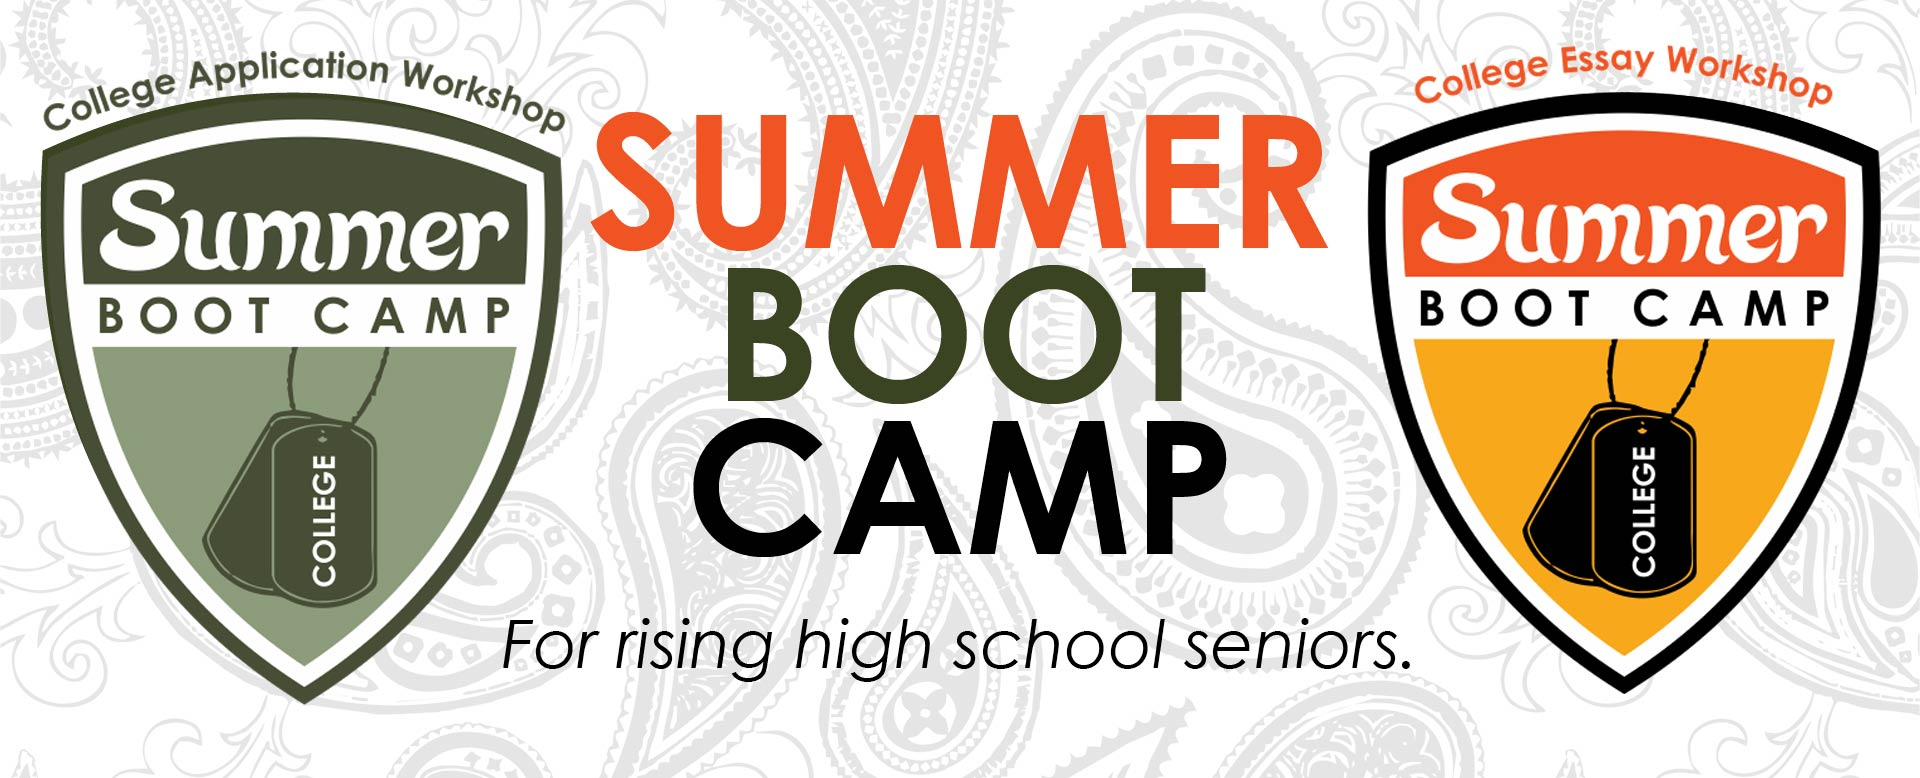 Summer Boot Camp for rising high school seniors.